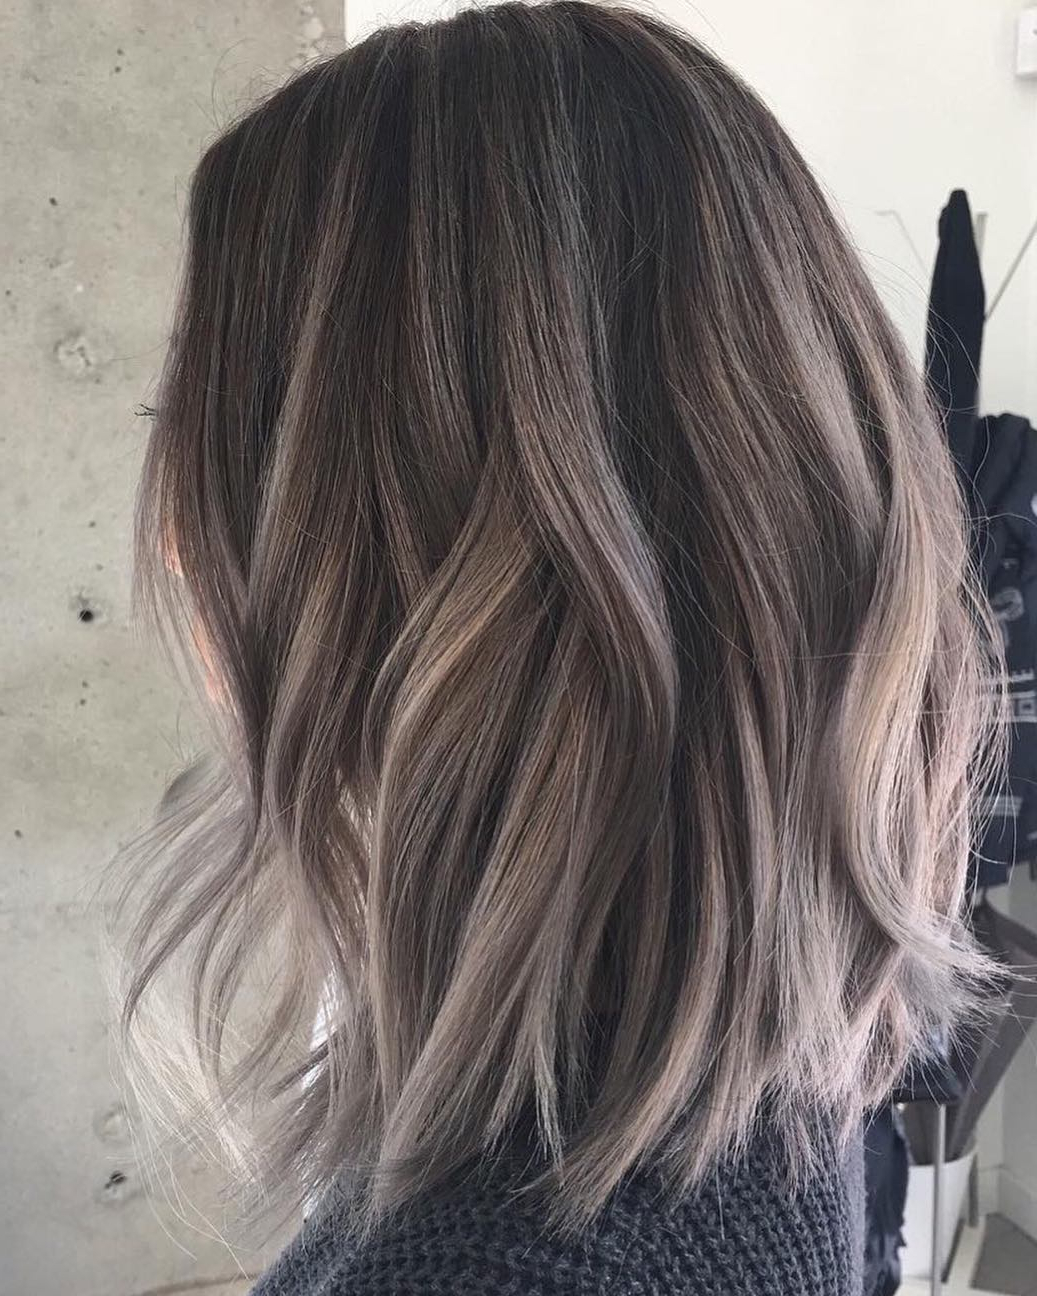 10 Medium Length Hair Color Ideas 2019 Intended For Most Up To Date Medium Haircuts With Gray Hair (Gallery 7 of 20)